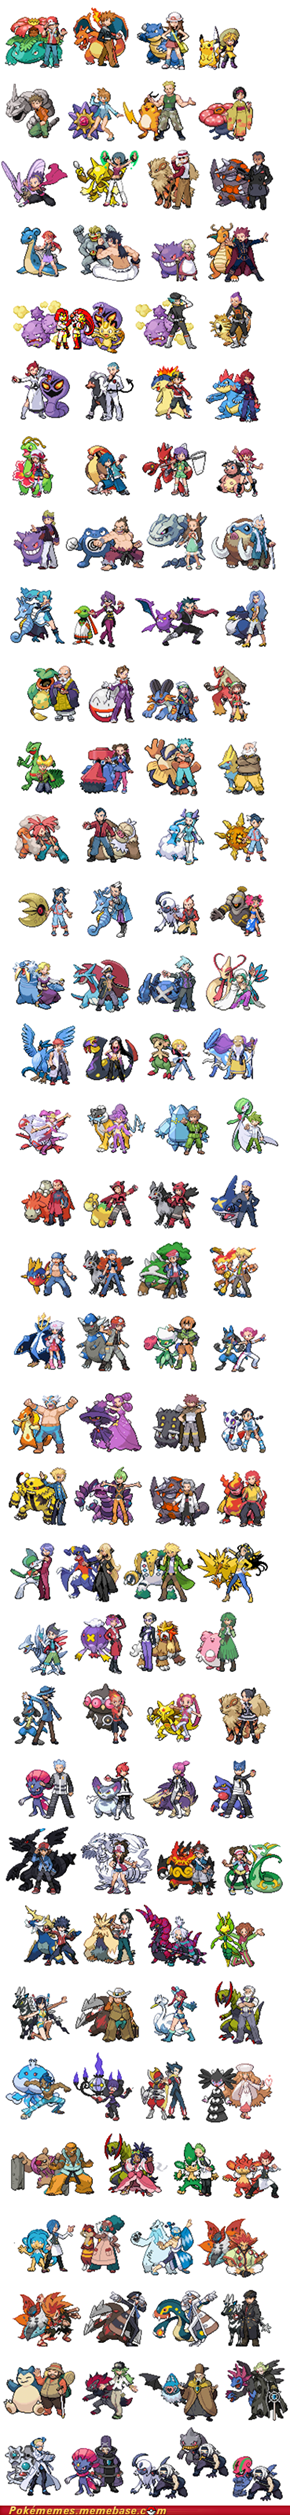 137 trainers! Gotta fight them all